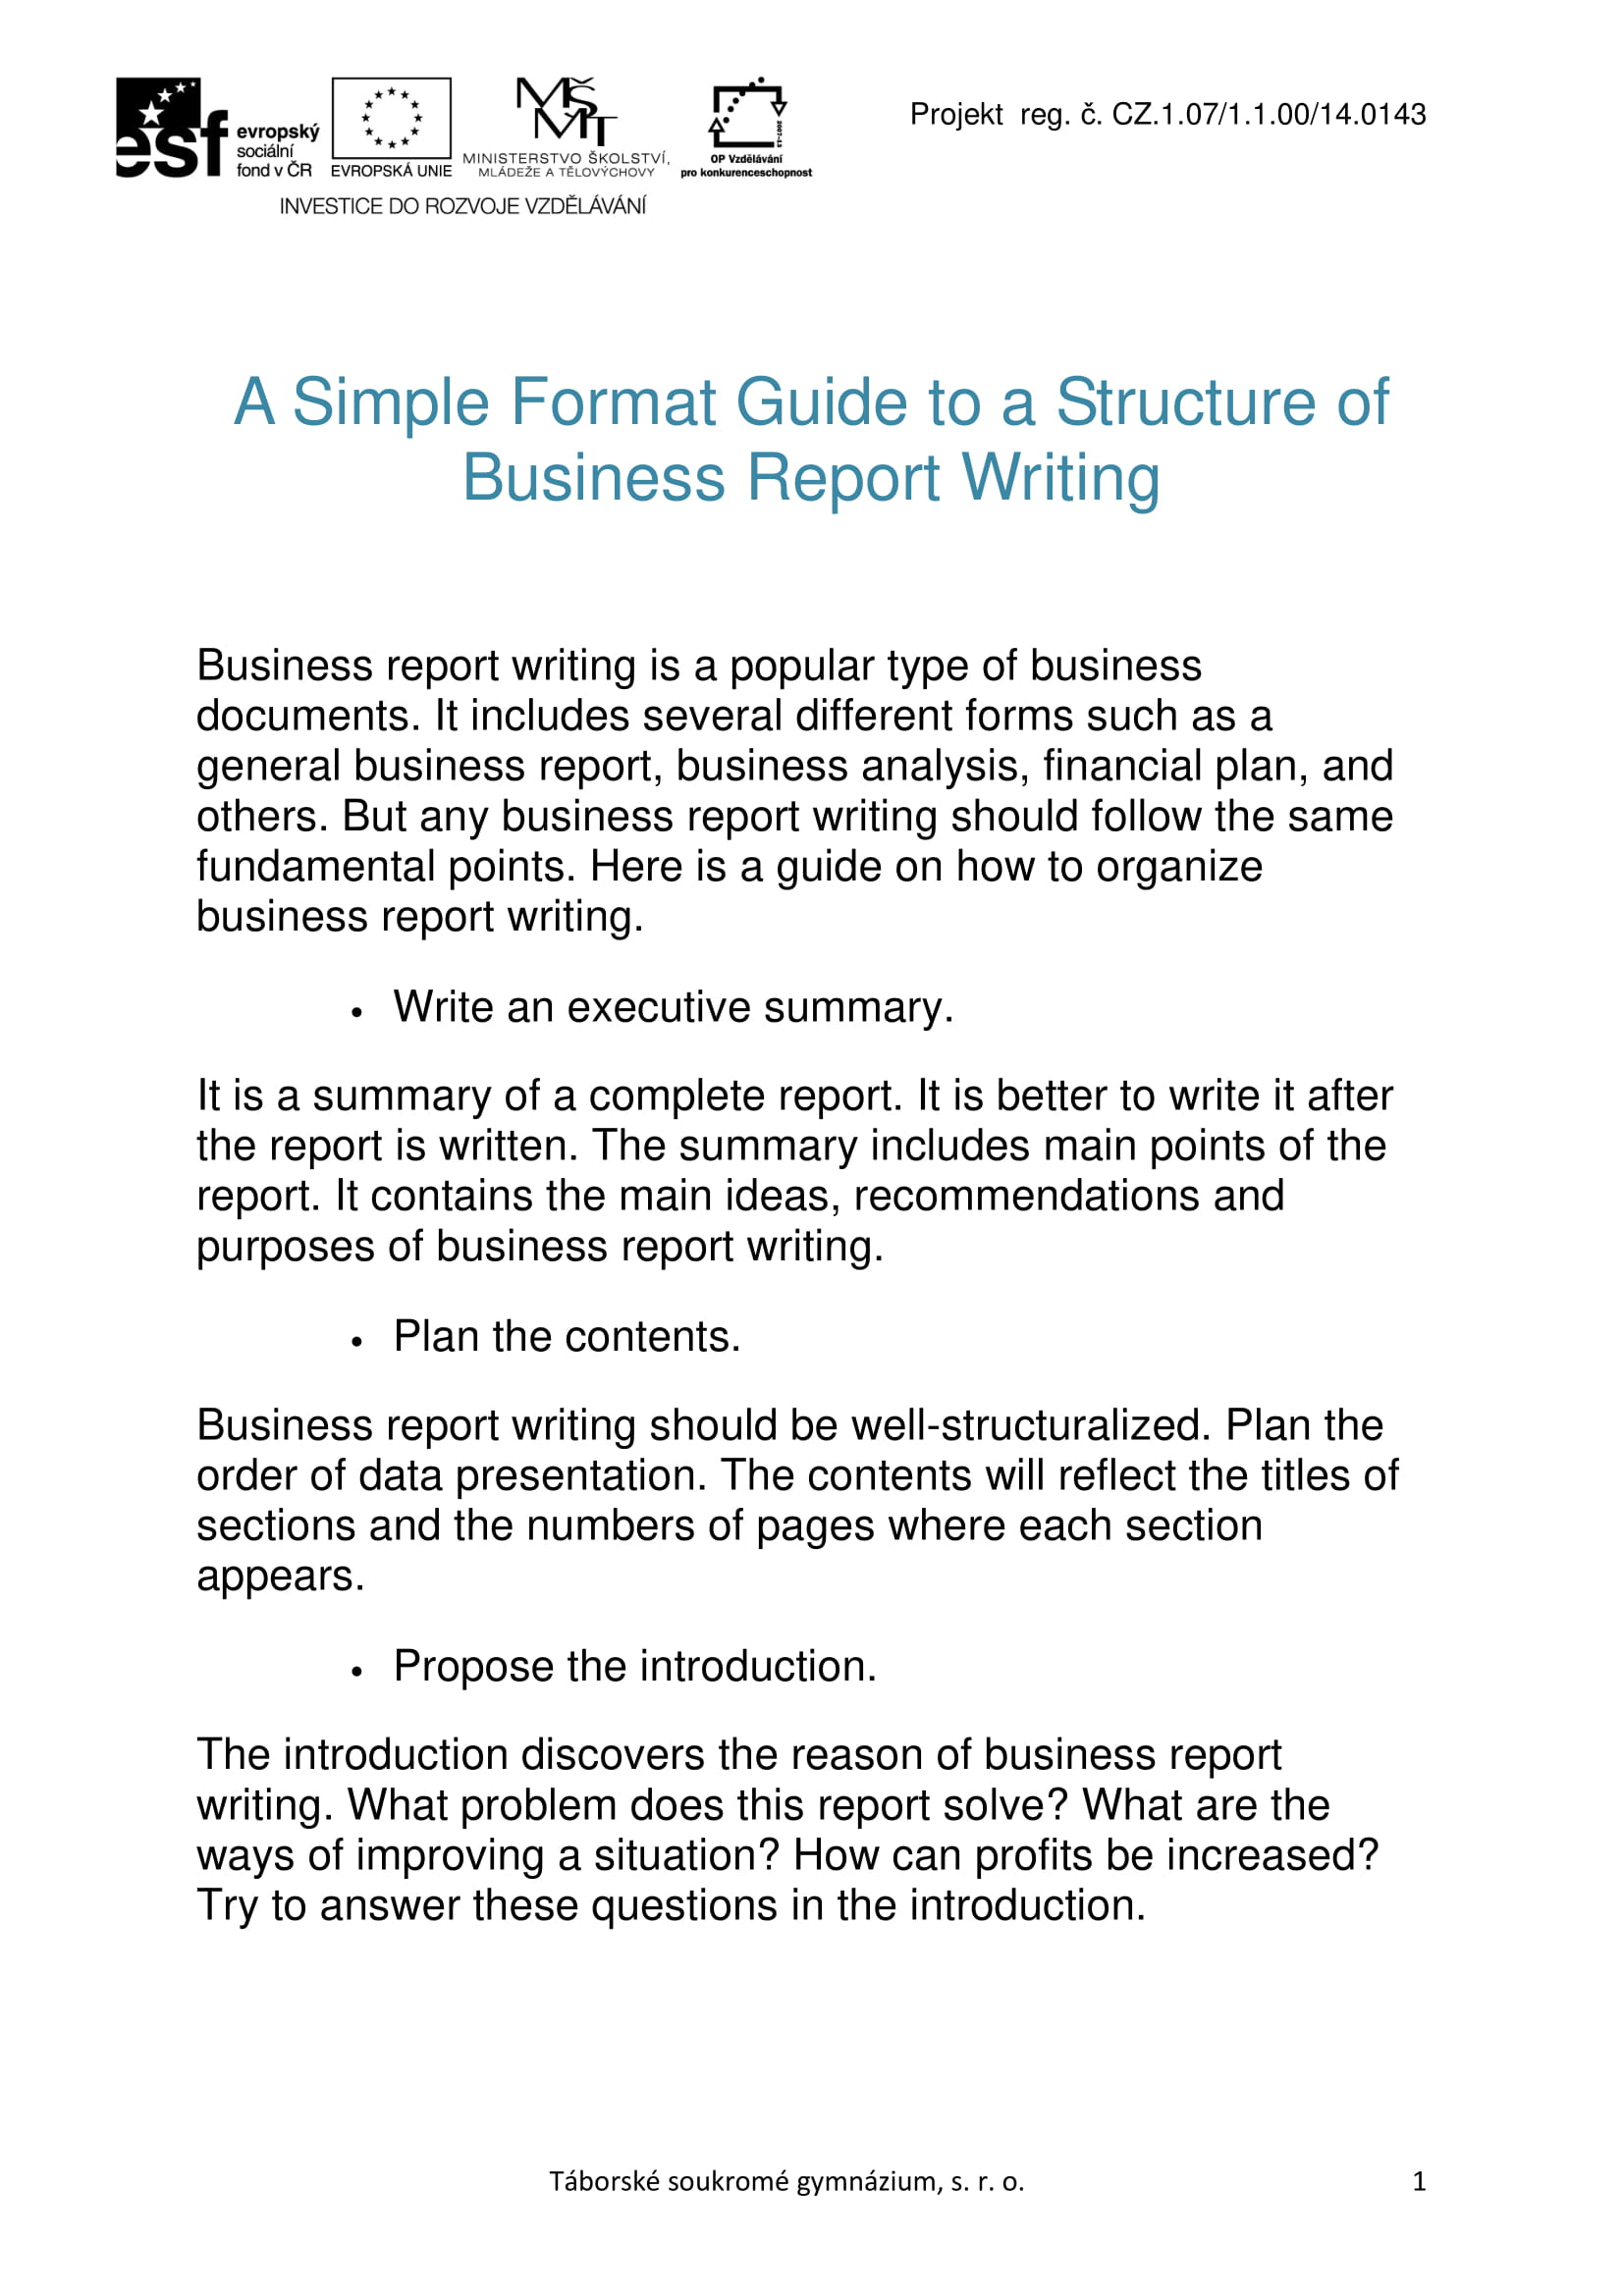 how to right a business report